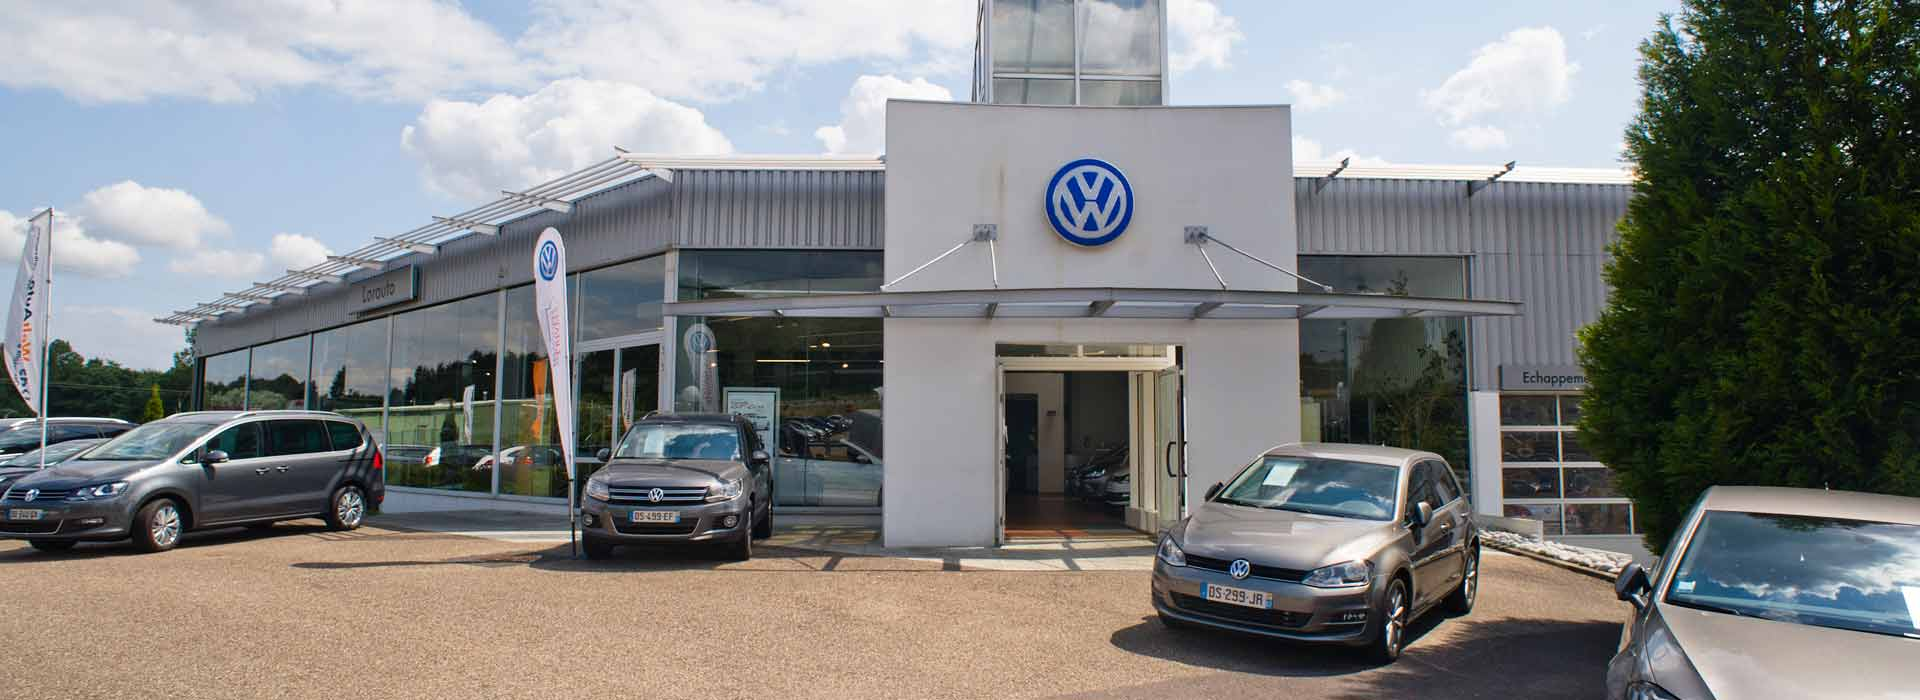 volkswagen saint avold concessionnaire garage moselle 57